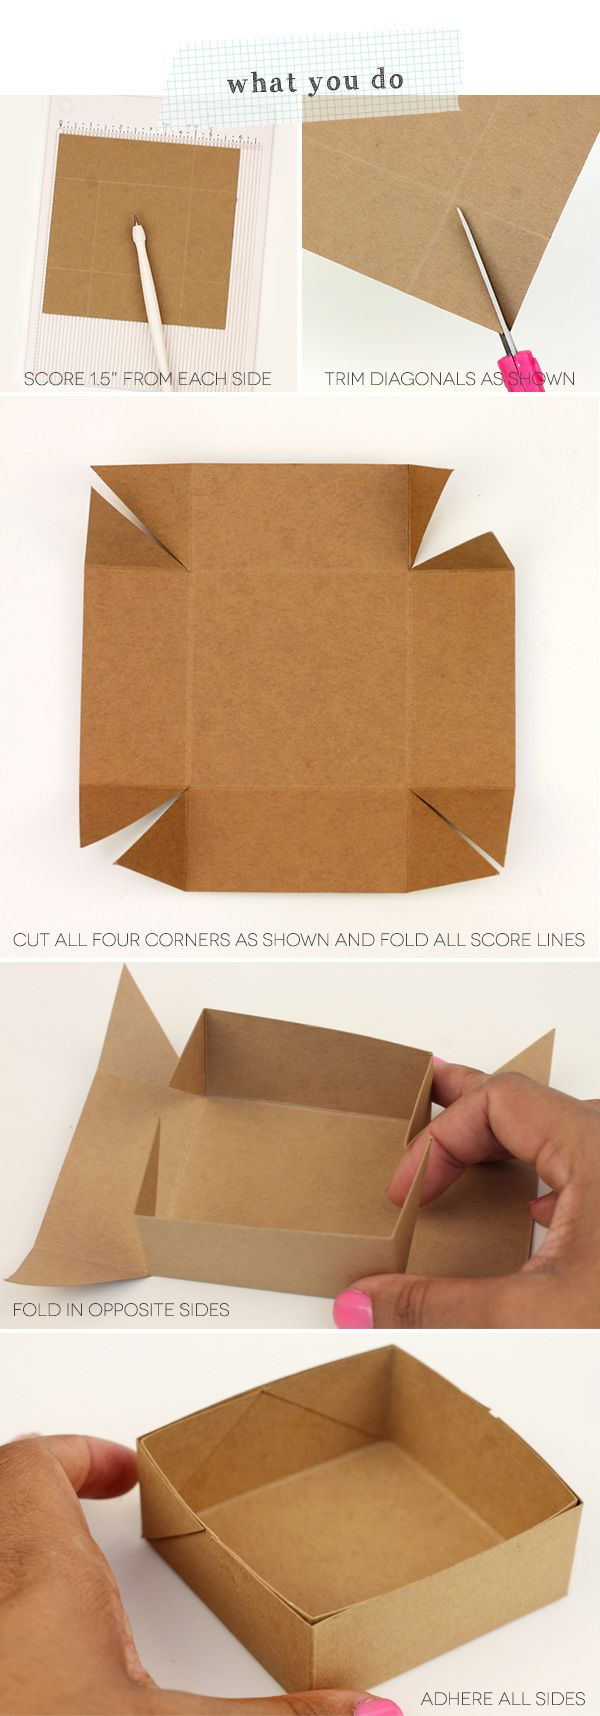 17 Best ideas about Paper Box Tutorial on Pinterest | Diy box, Box ...